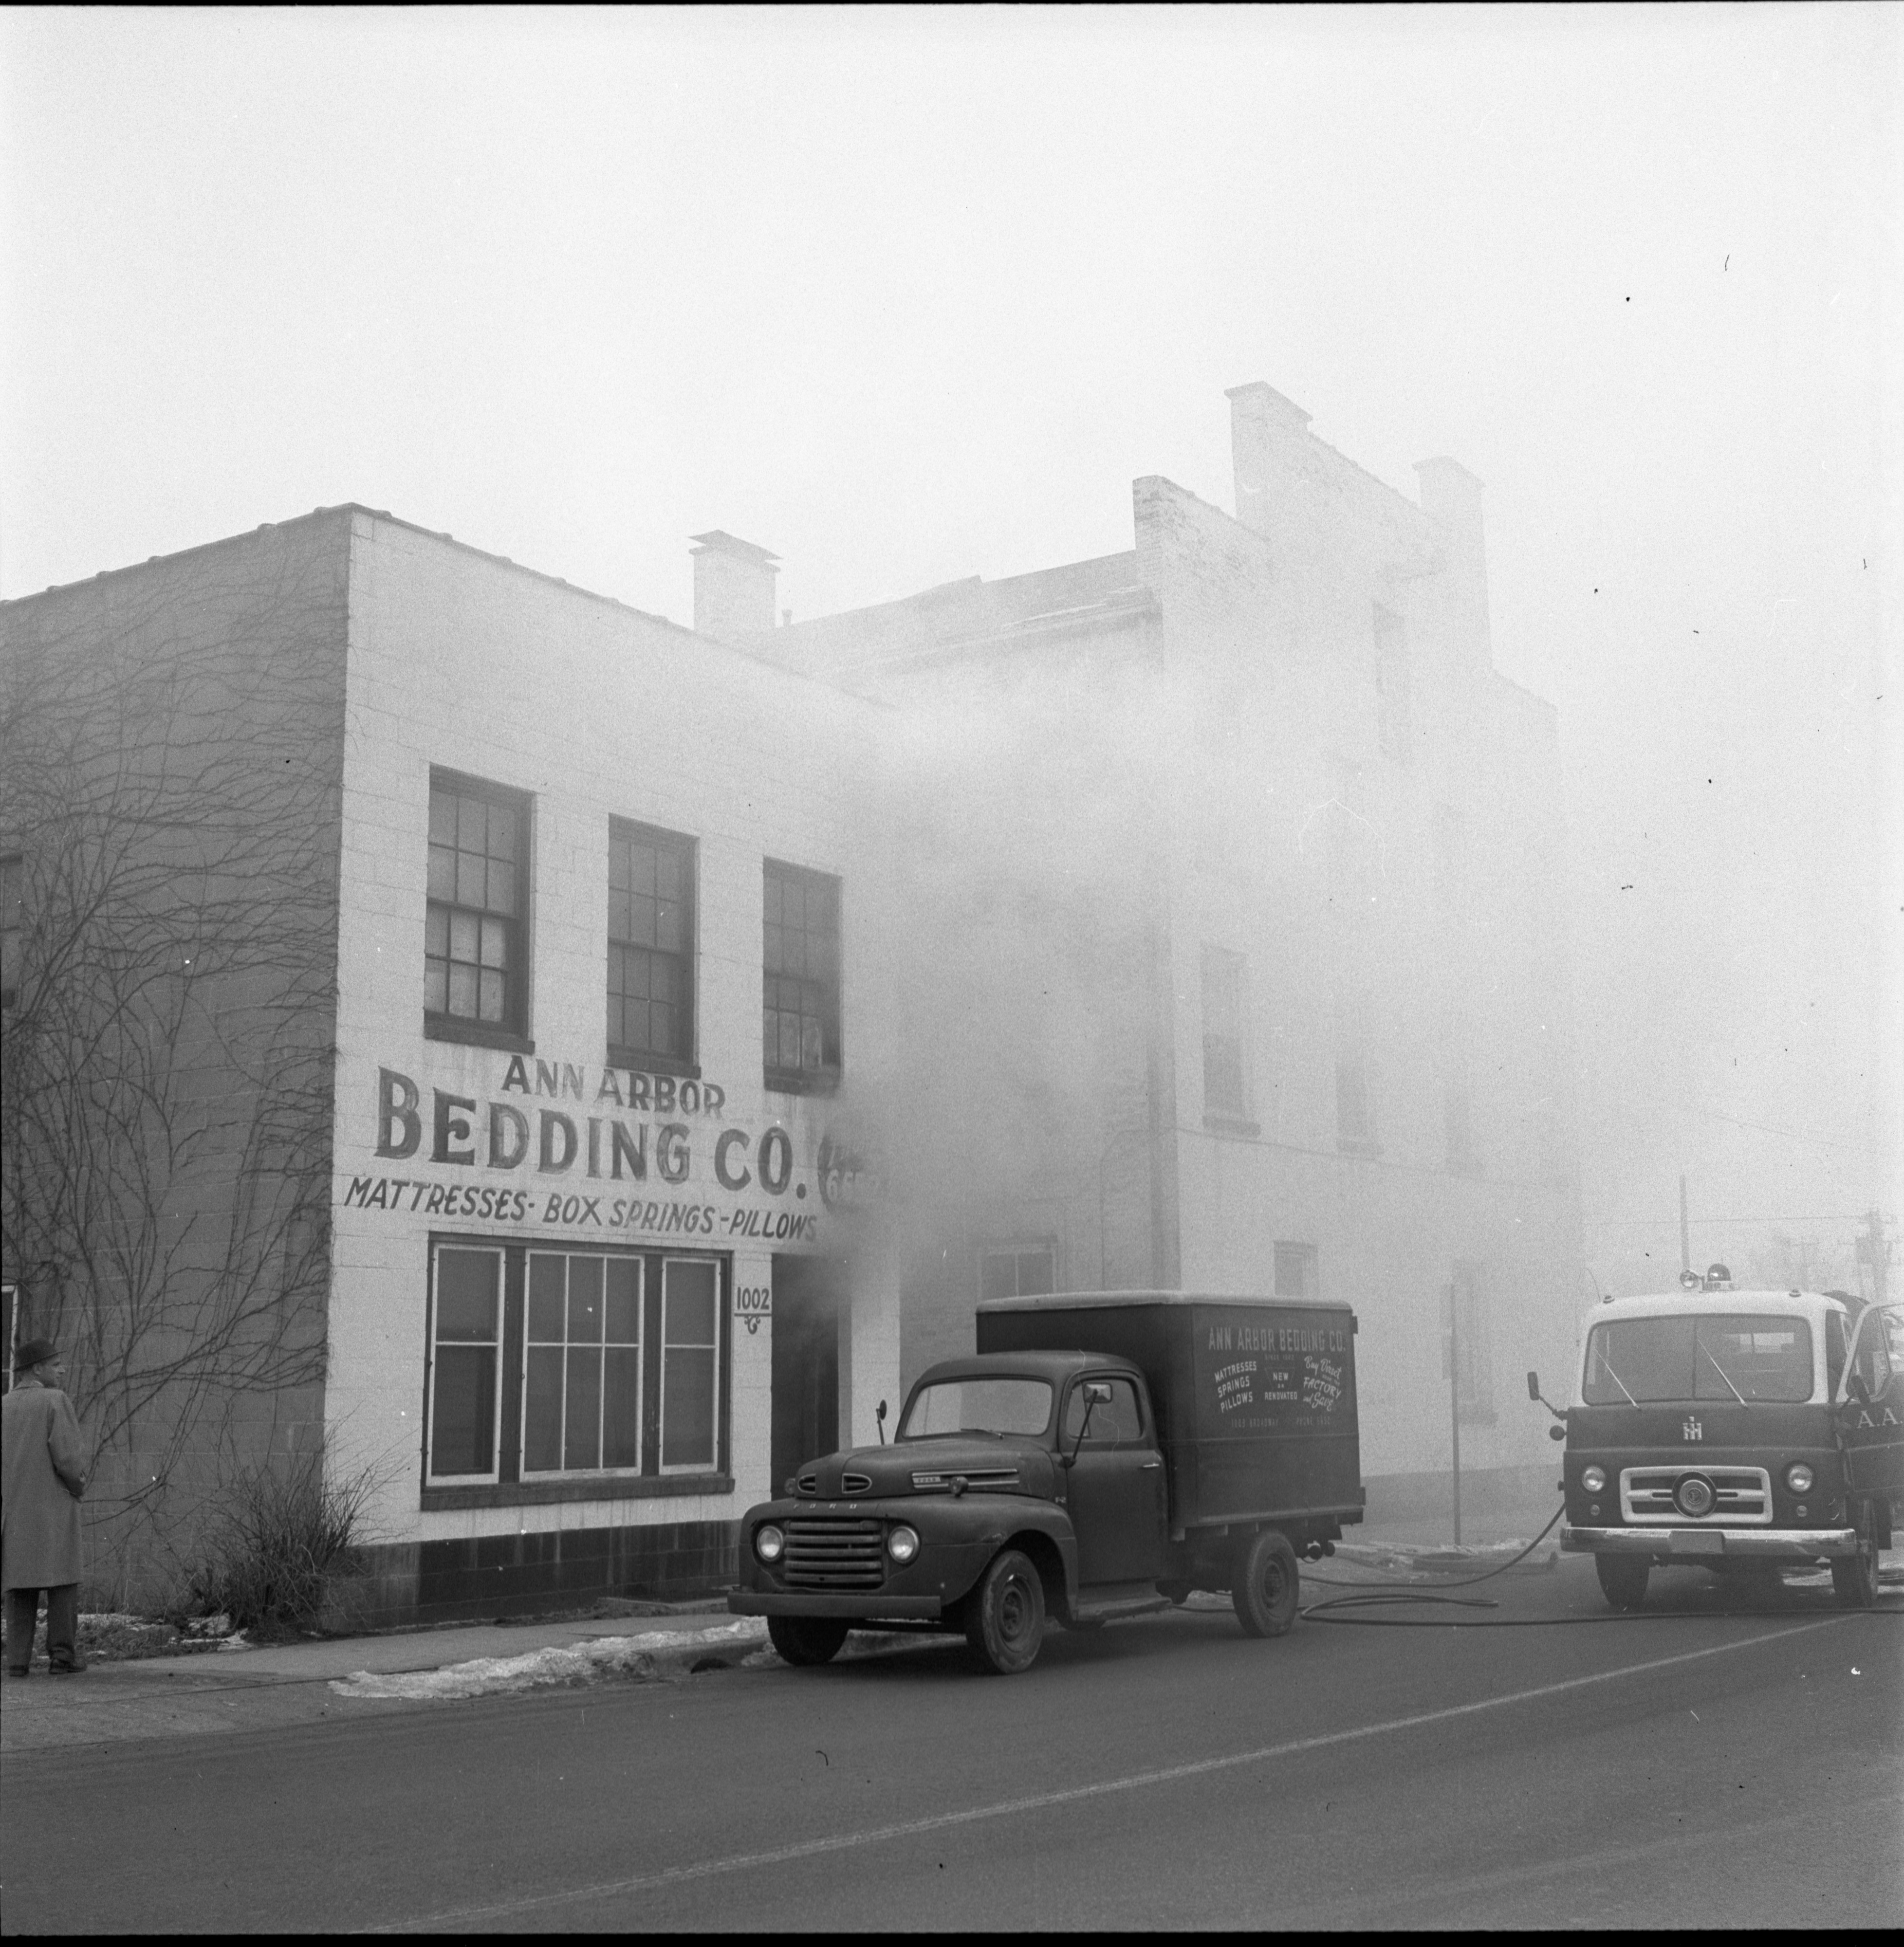 Fire At The Ann Arbor Bedding Co., February 1957 image